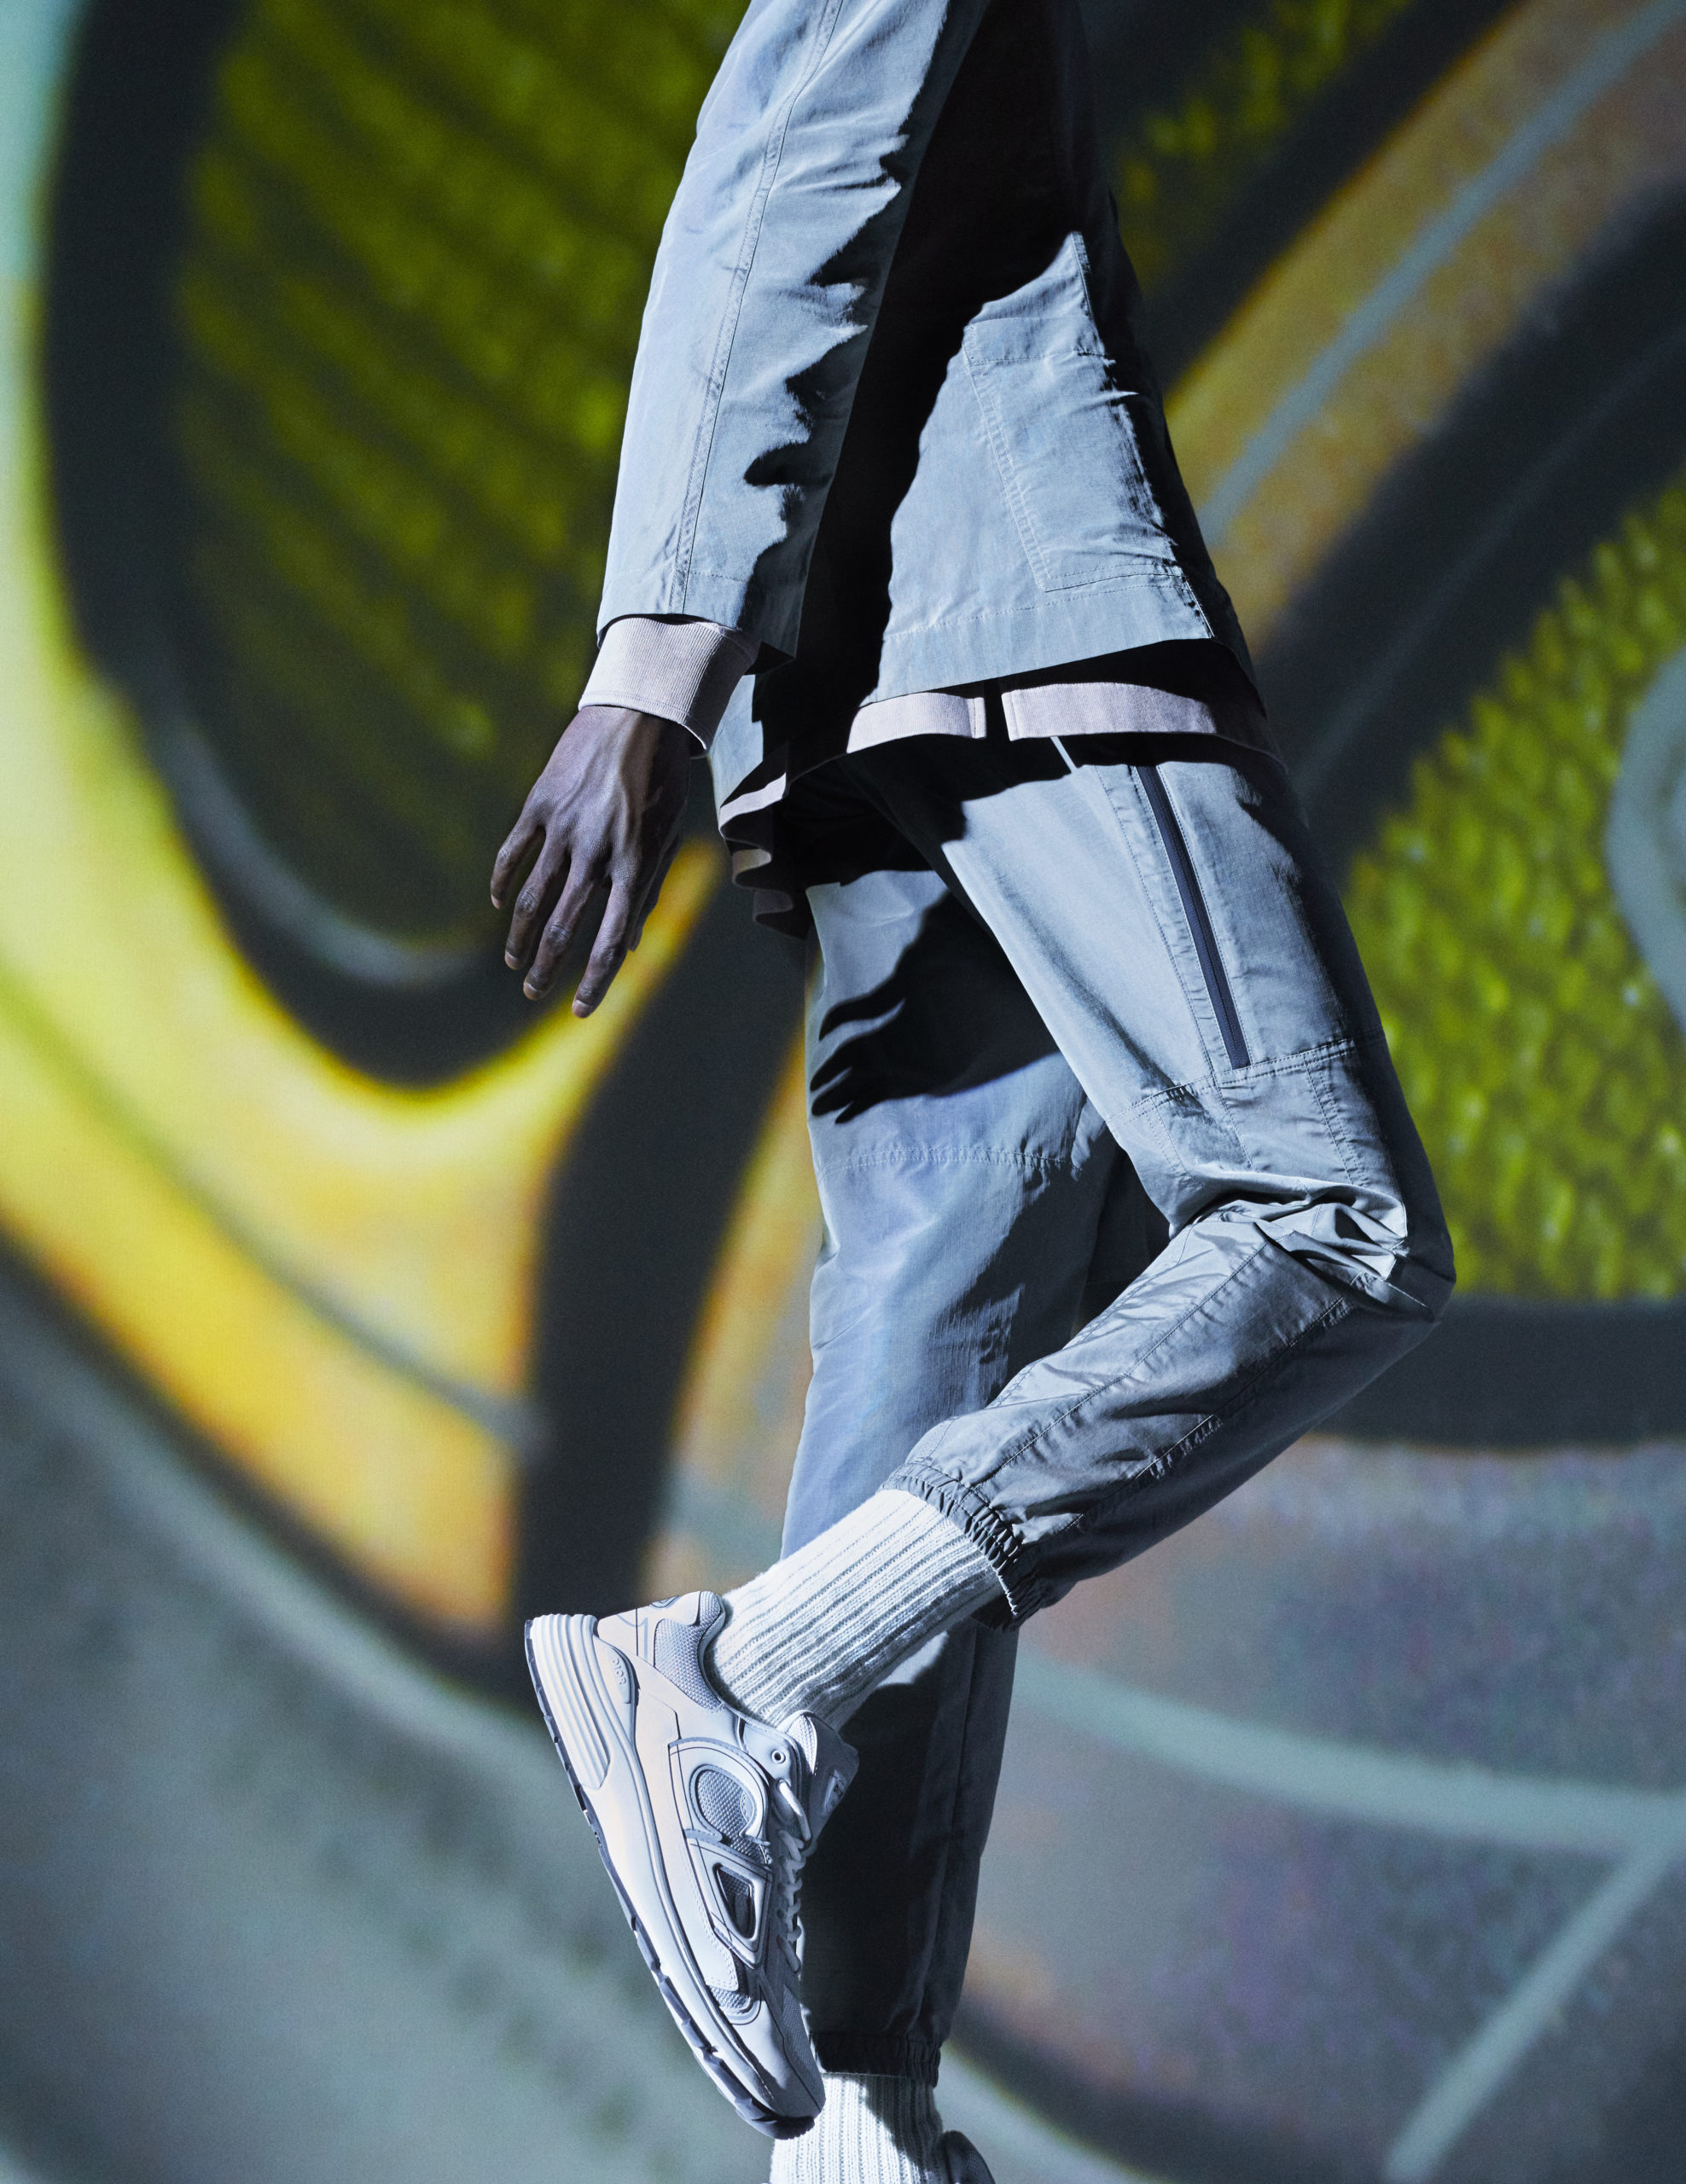 New Sneakers To Cop In 2021: Dior, Adidas, Nike Collaborations And More